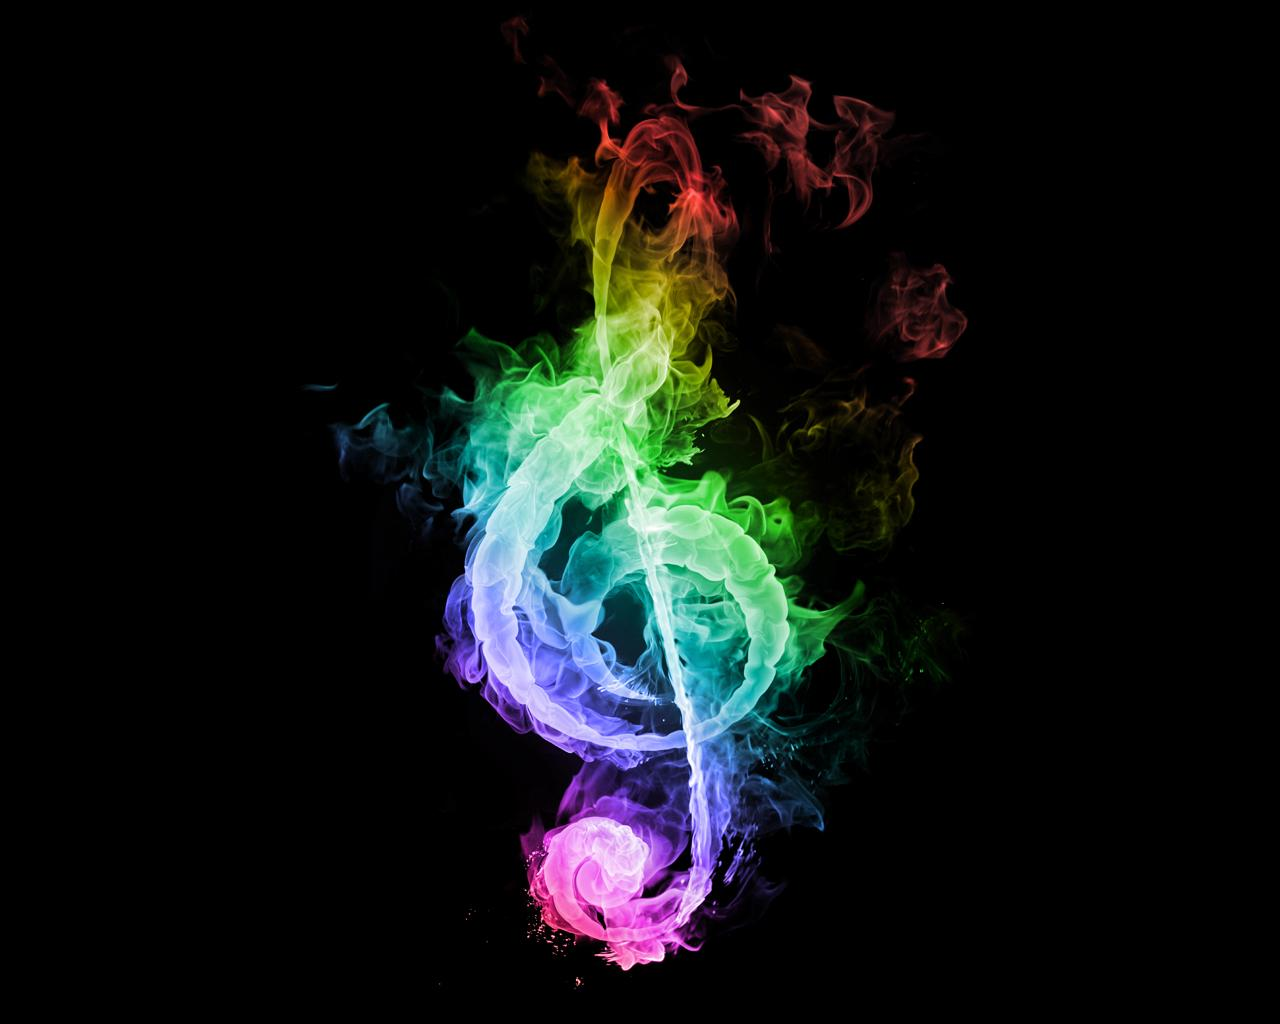 abstract flames music dark rainbows treble clef g-clef black background - Wallpaper (#780938) / Wallbase.cc